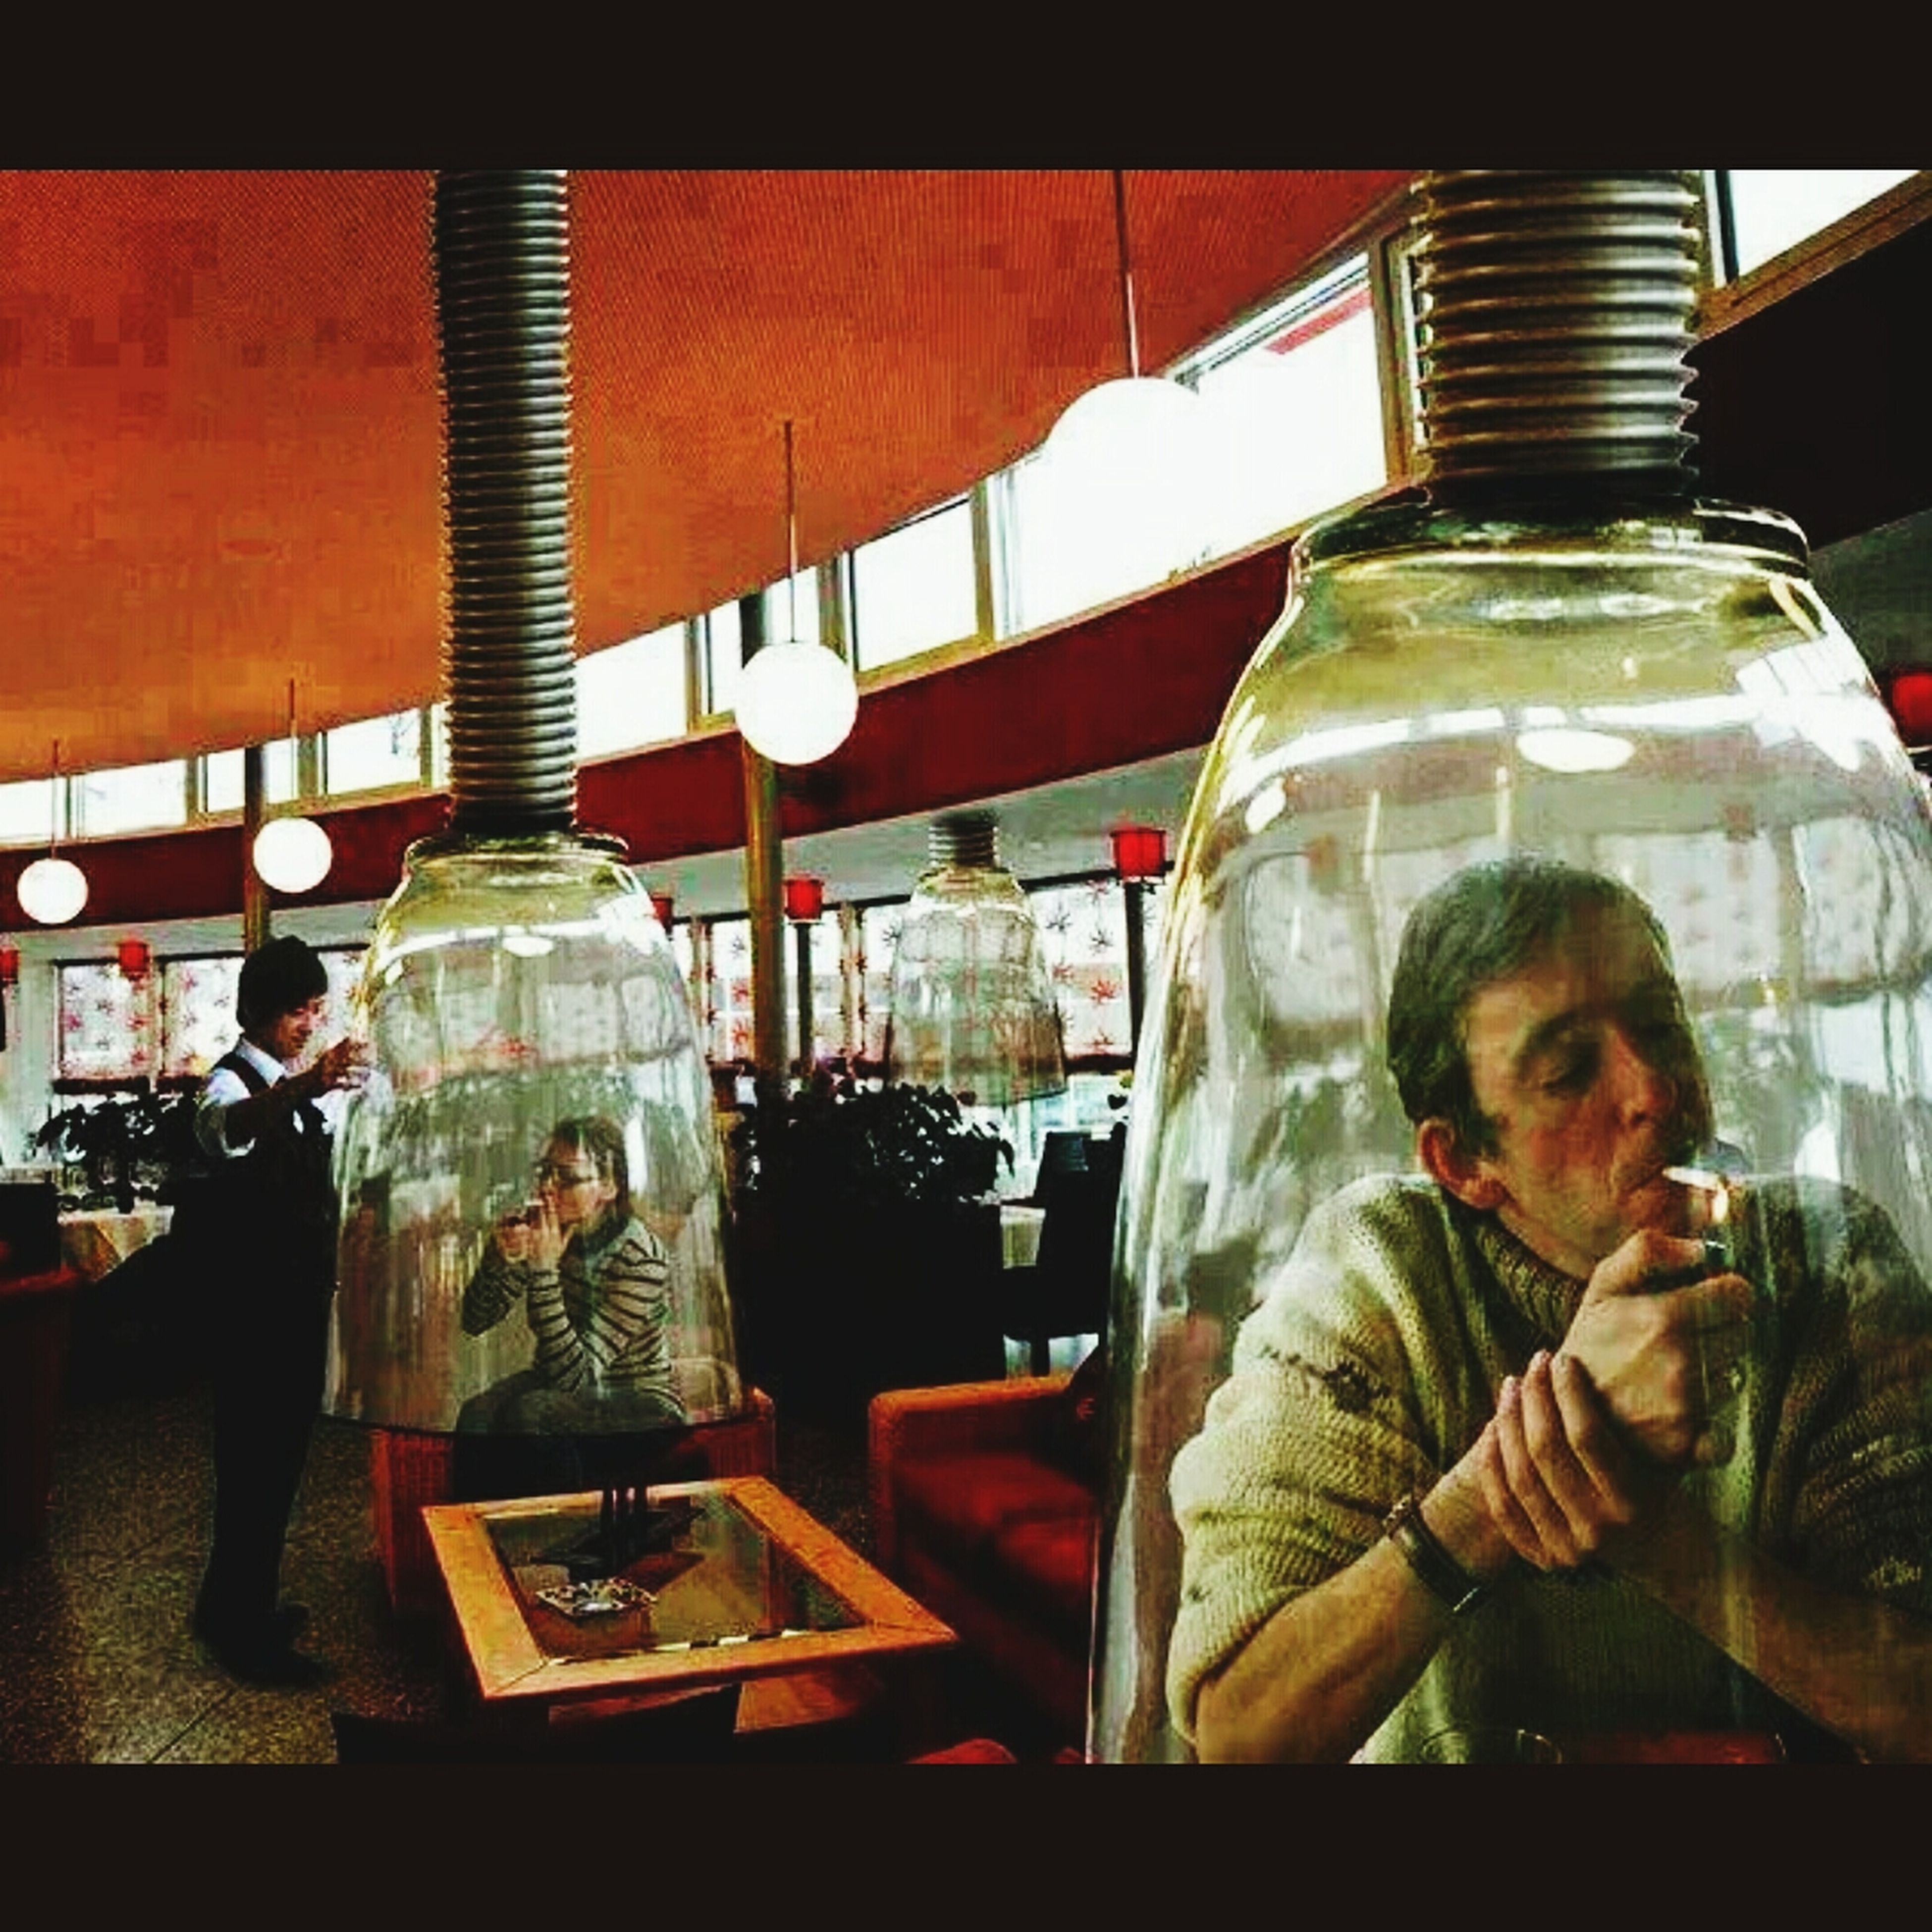 indoors, glass - material, table, religion, celebration, restaurant, spirituality, place of worship, lifestyles, transparent, incidental people, cultures, home interior, human representation, illuminated, men, sitting, tradition